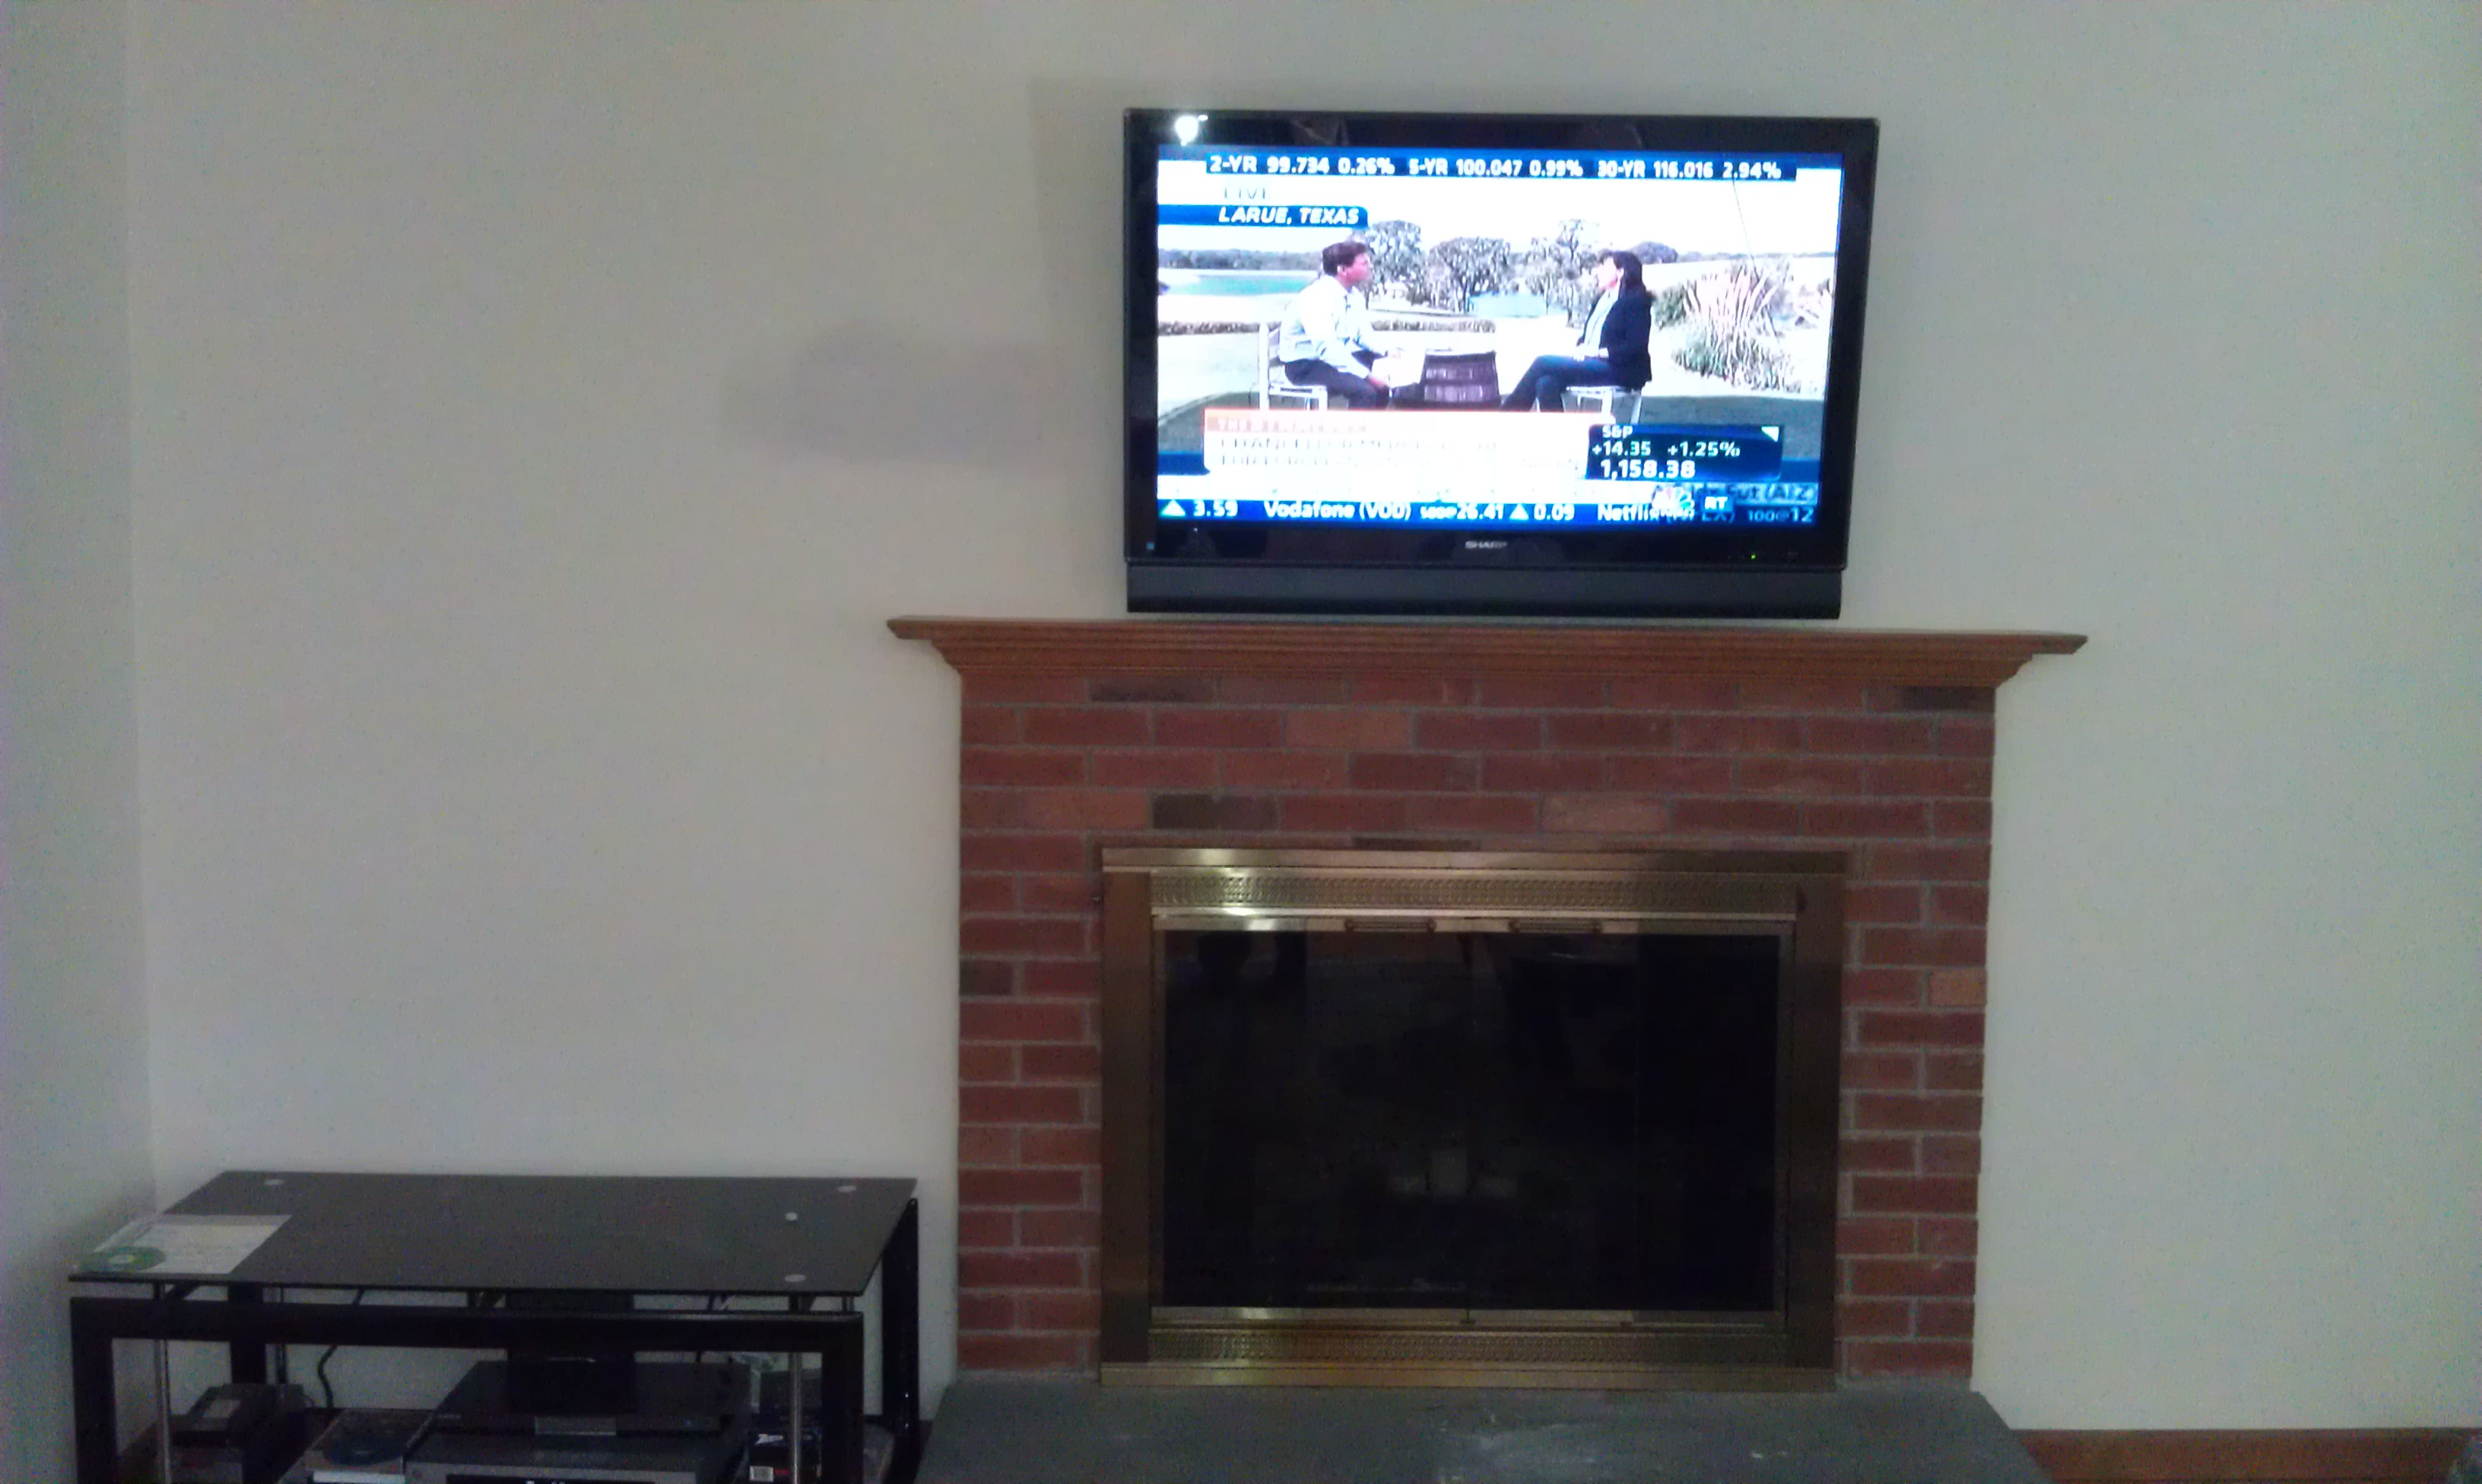 New Fairfield Ct Mount Tv On Wall Richey Group Llc Audio Video Experts